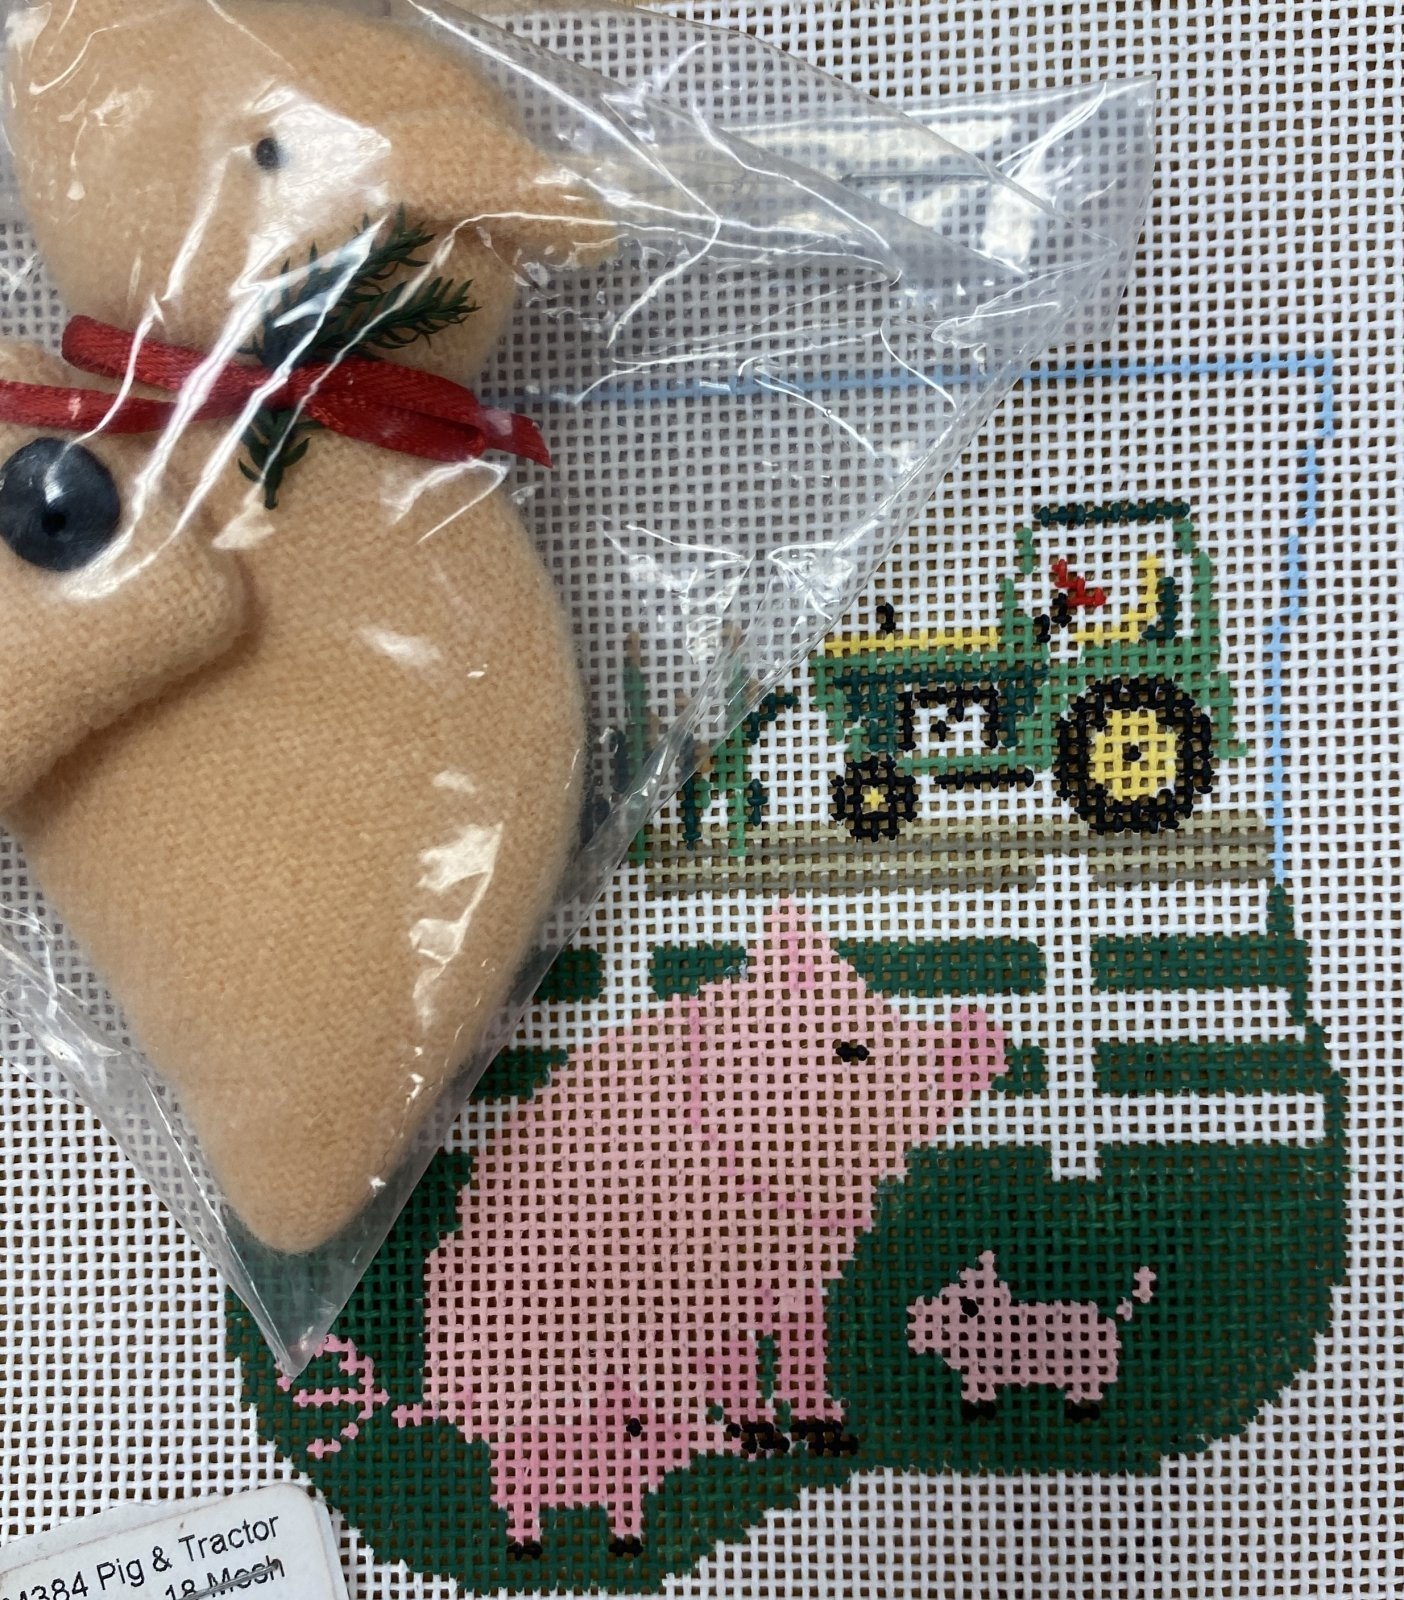 pig & tractor